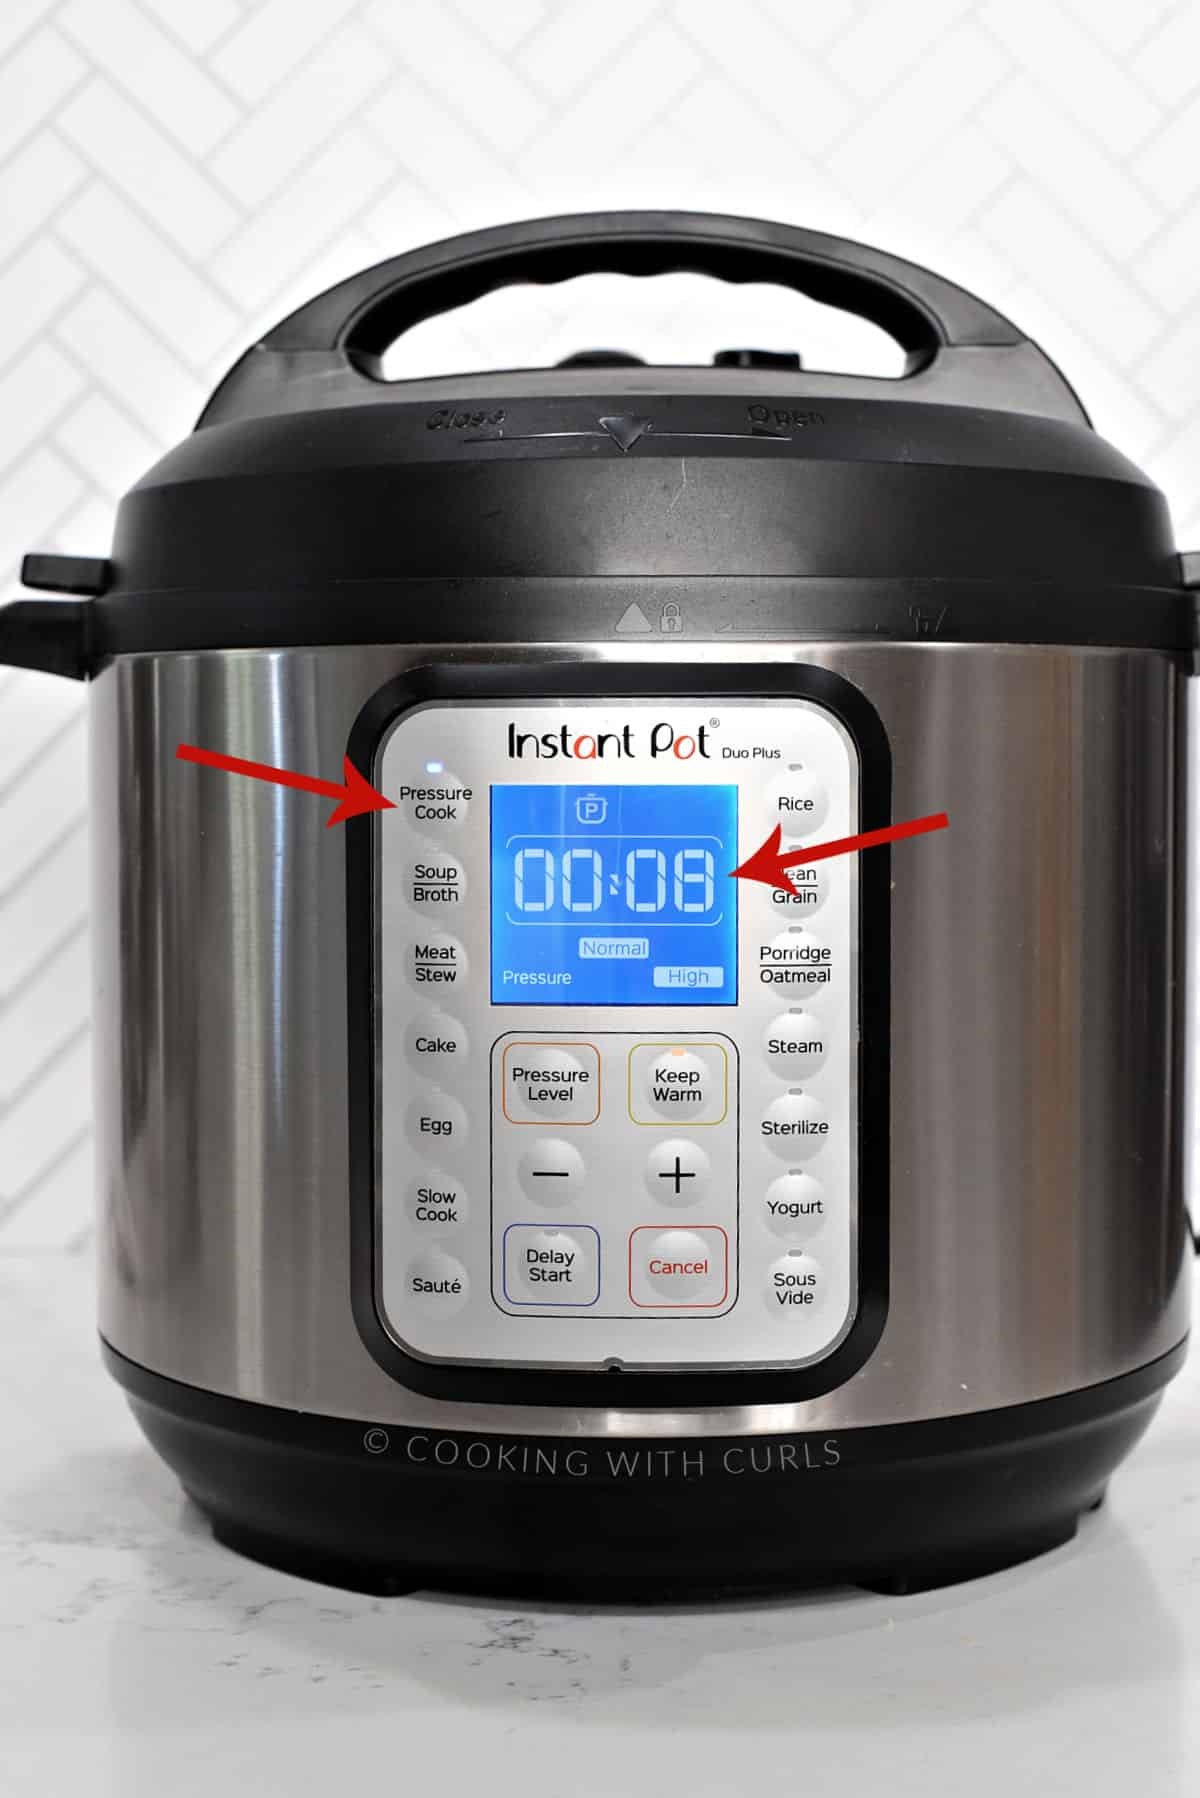 Instant Pot set to 8 minutes on High Pressure.